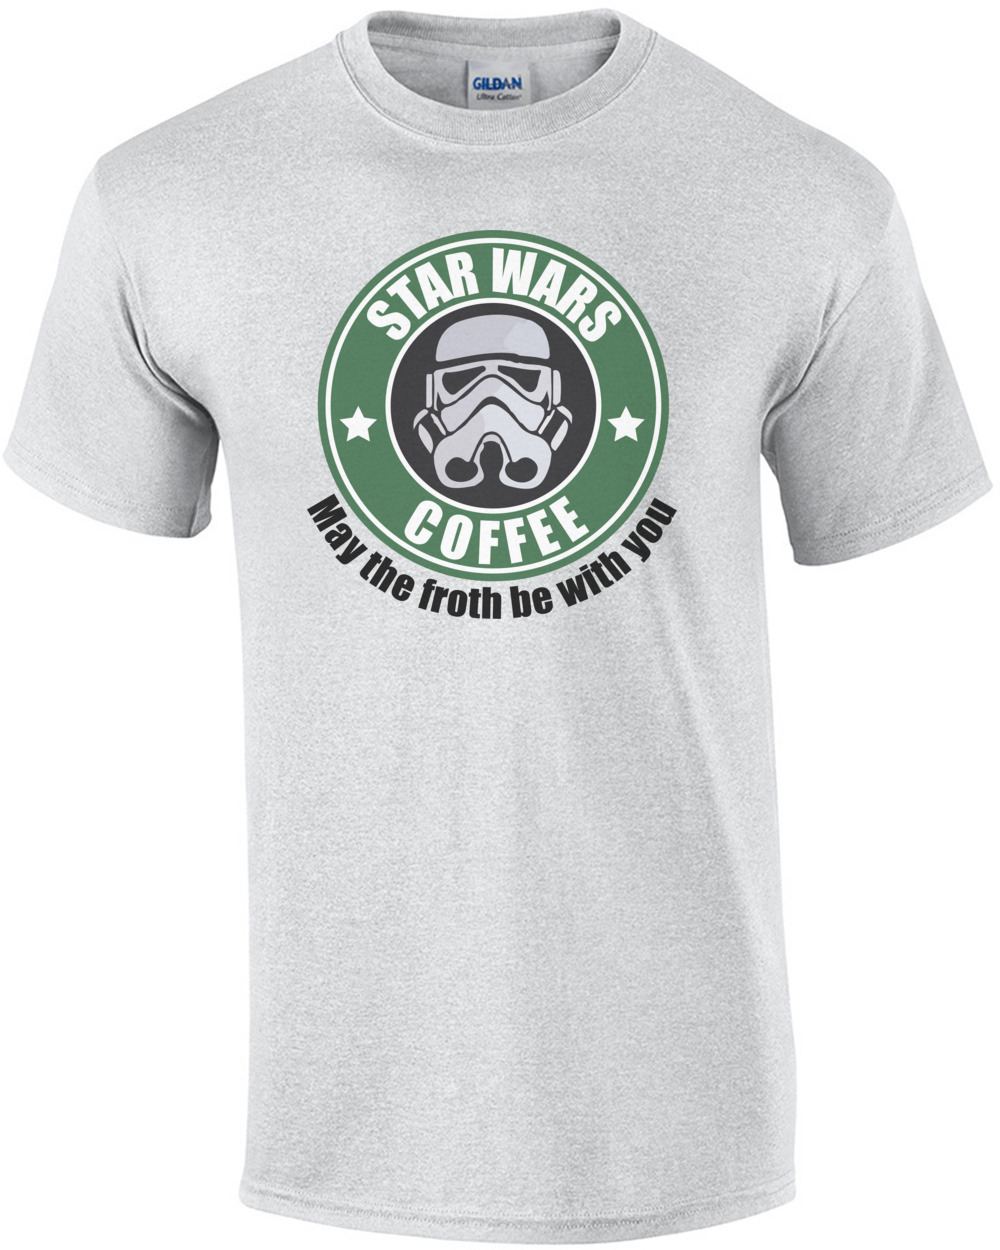 e34d7441 Star Wars Coffee - May the froth be with you Star Wars T-Shirt shirt